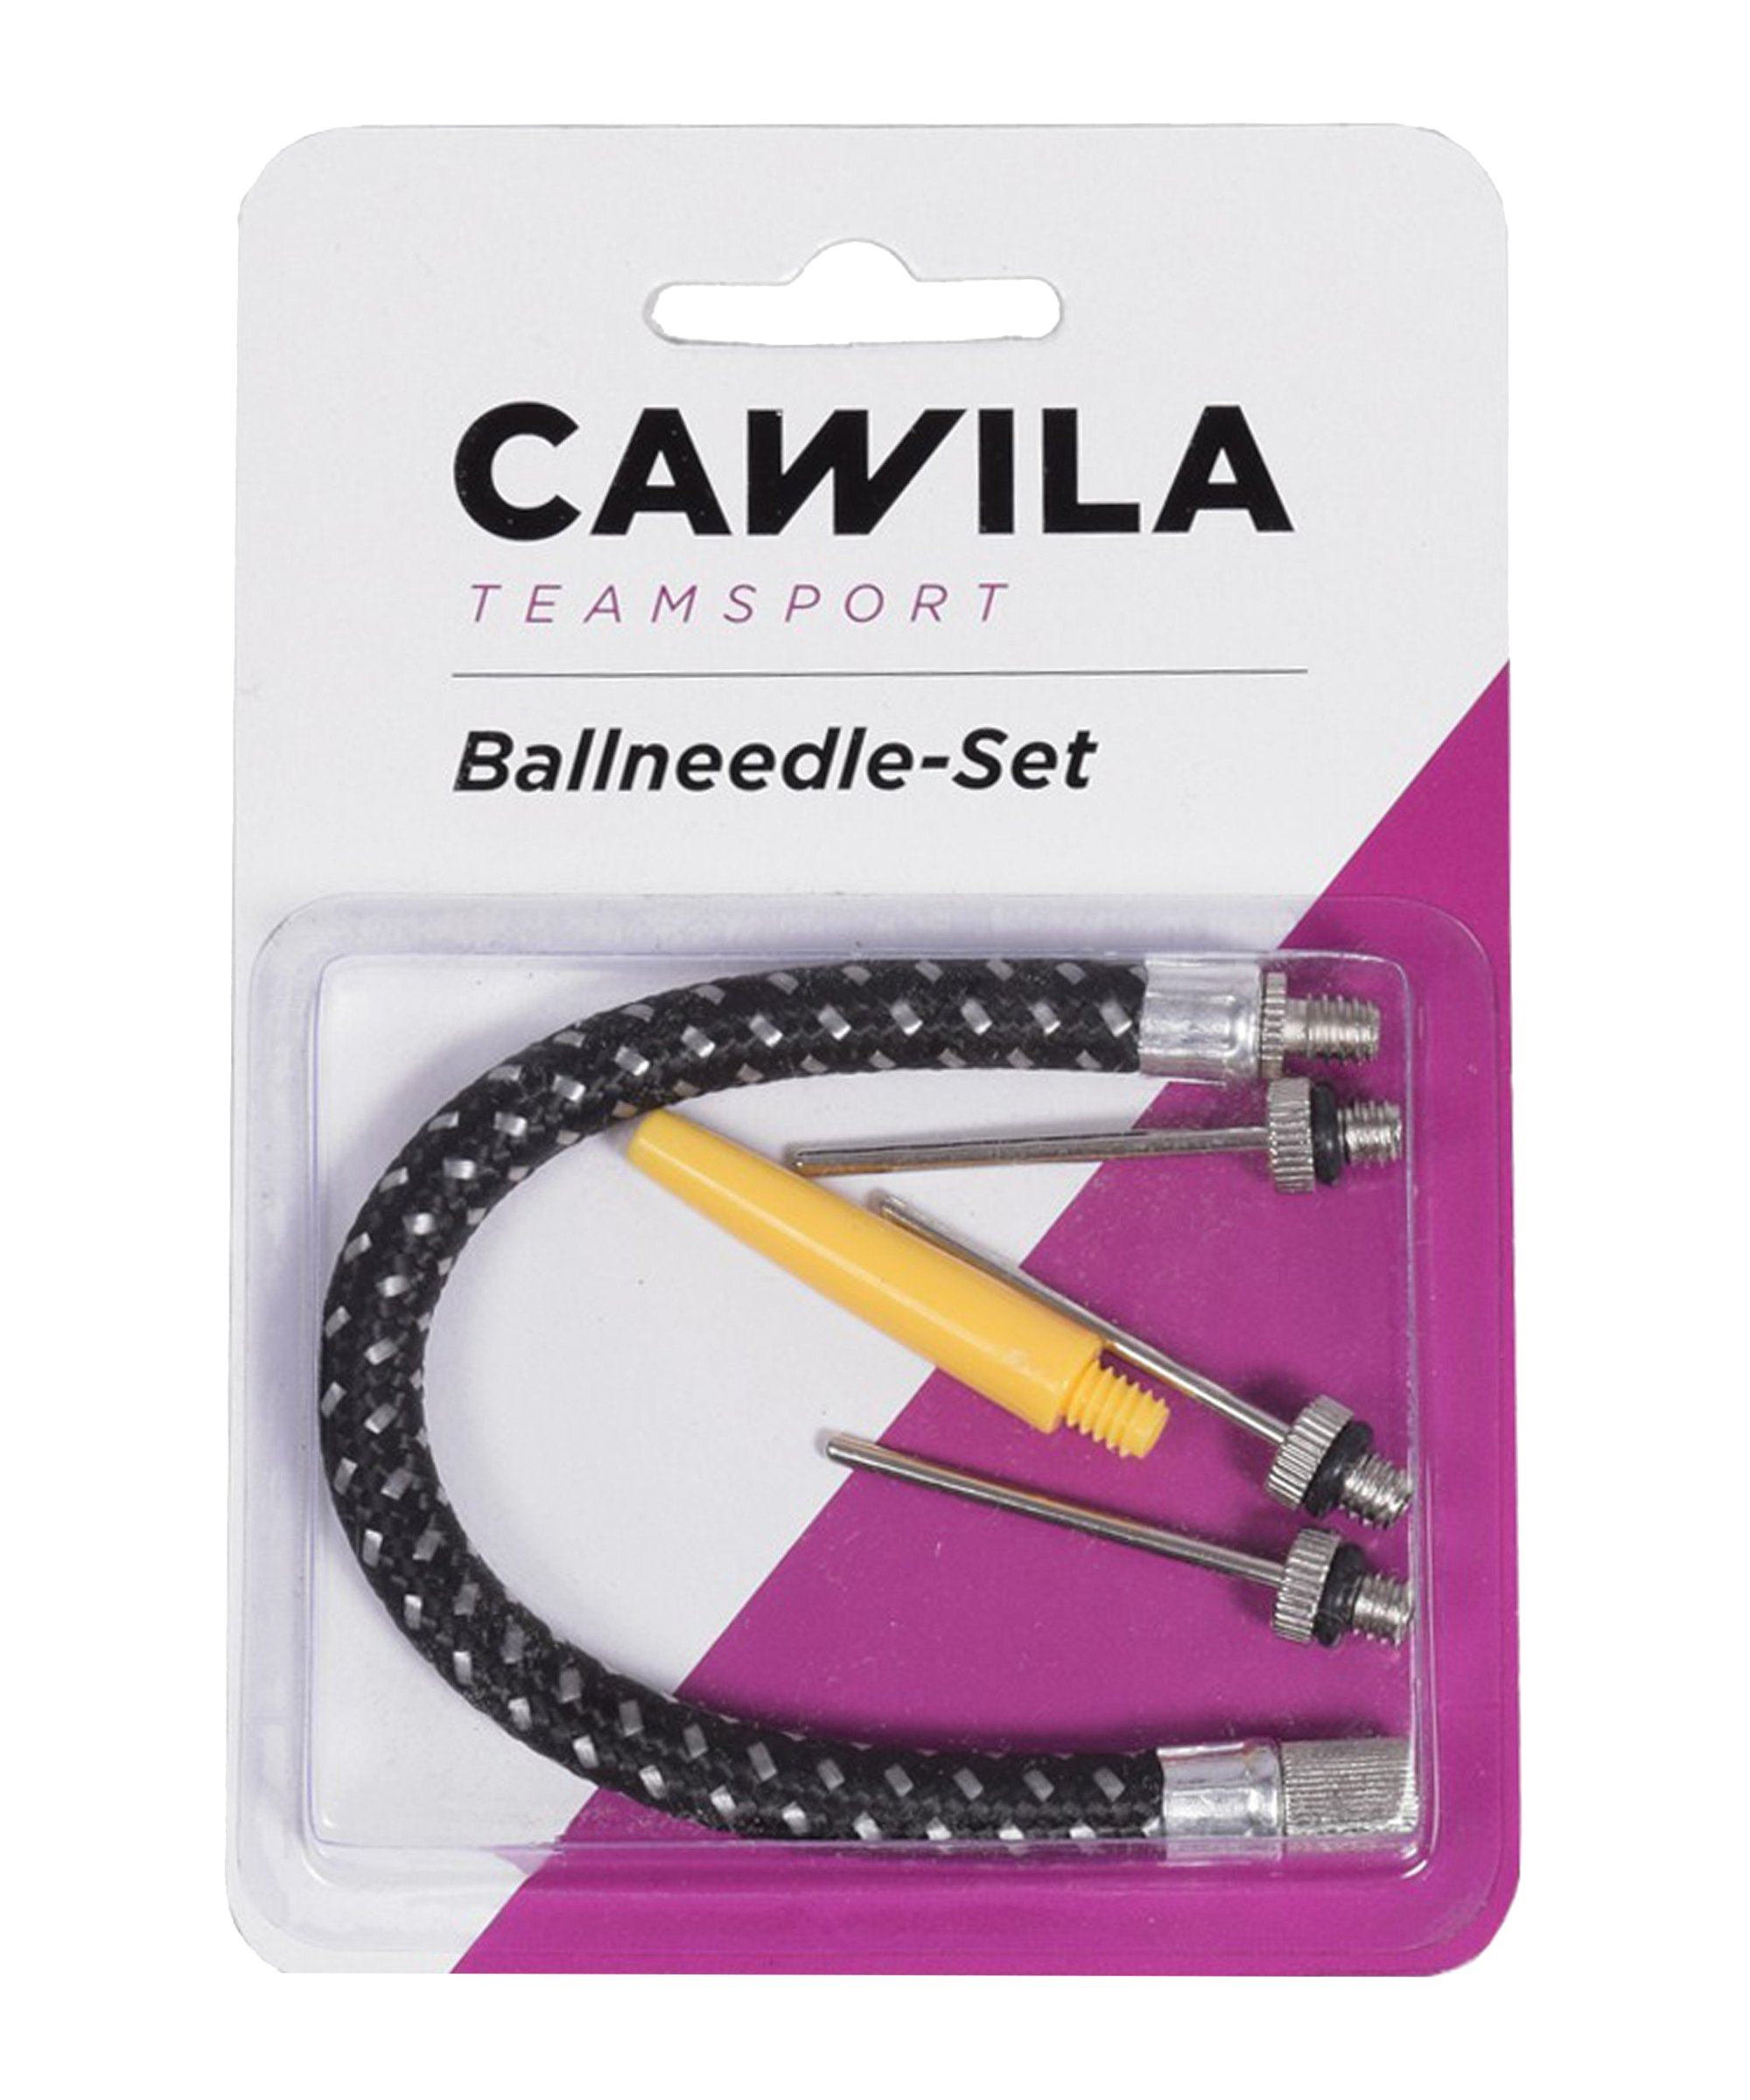 Cawila Hohlnadelset mit Schlauchadapter - silber